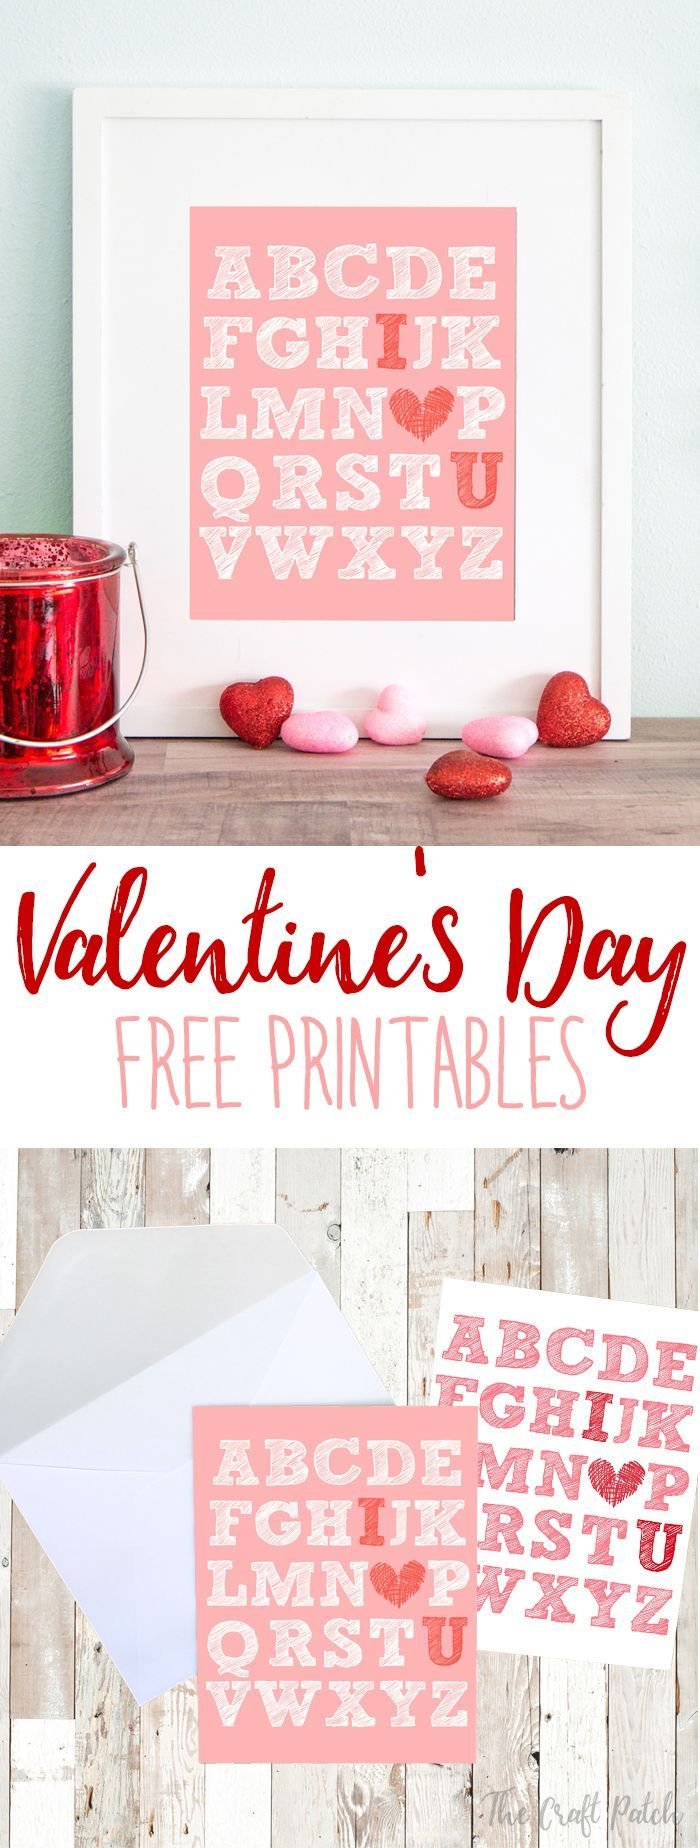 Free Printable Valentine's Day I Heart U Art - The Craft Patch